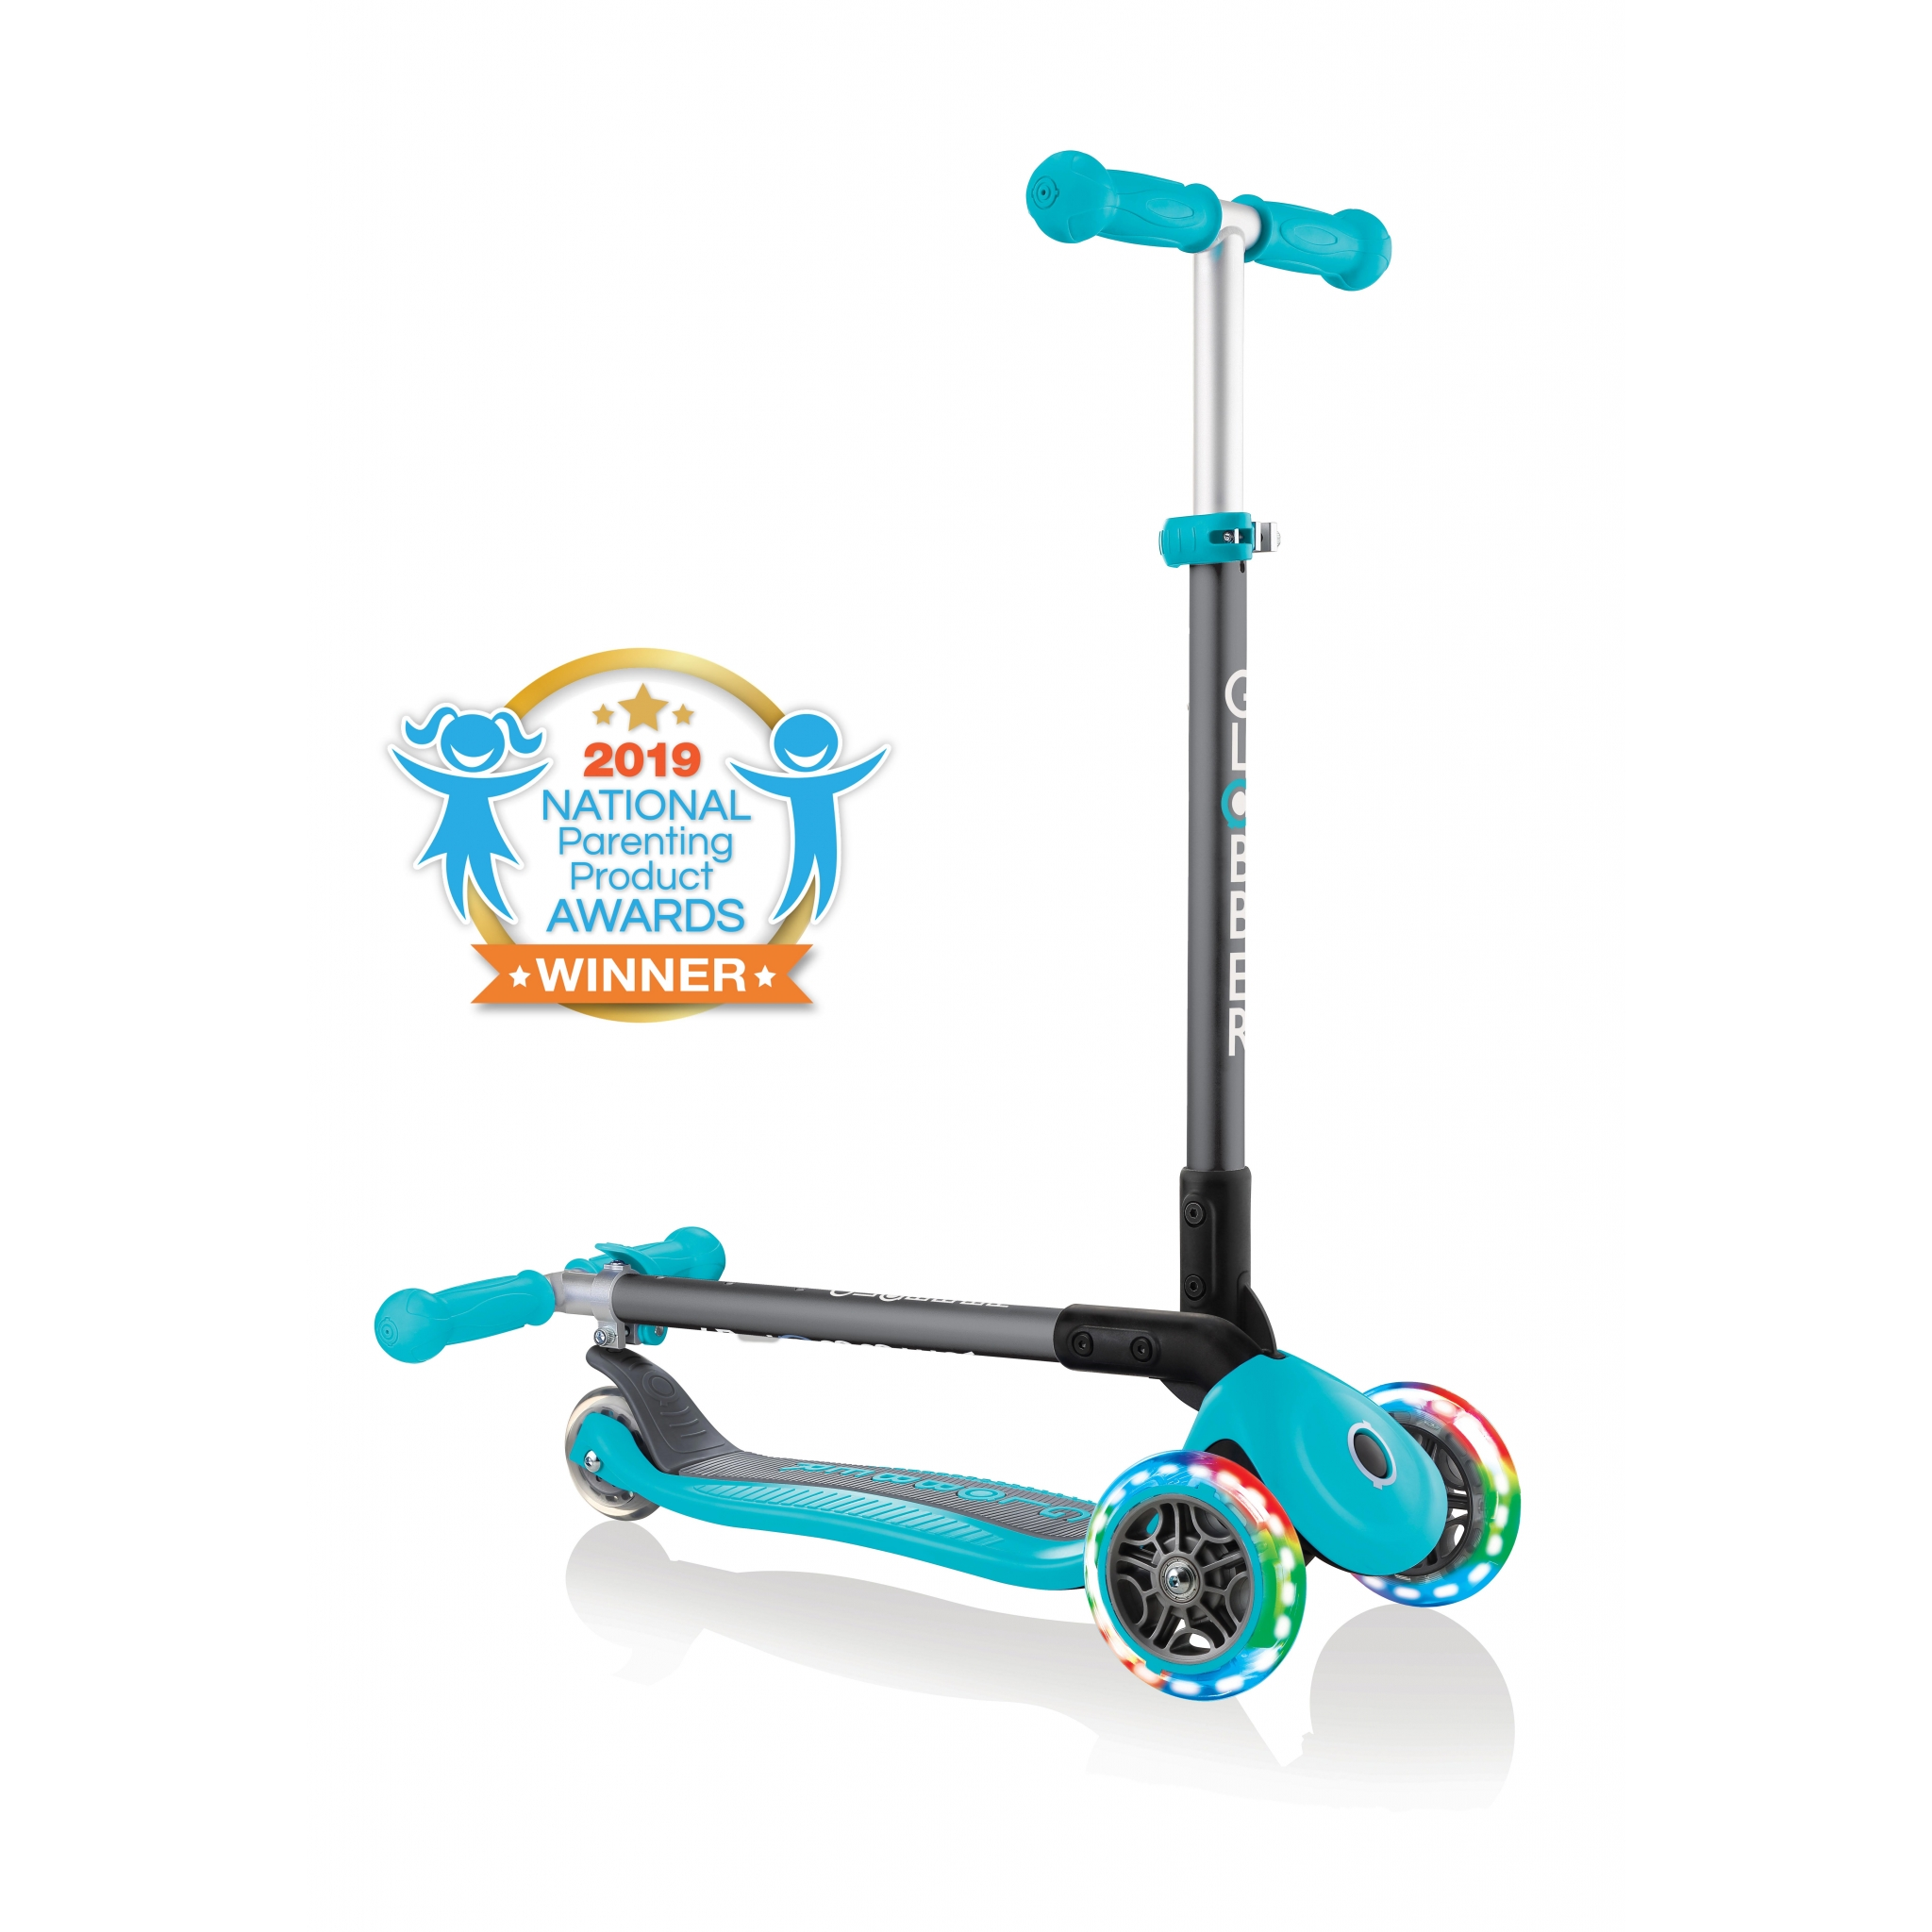 PRIMO-FOLDABLE-LIGHTS-3-wheel-fold-up-scooter-for-kids-teal 0